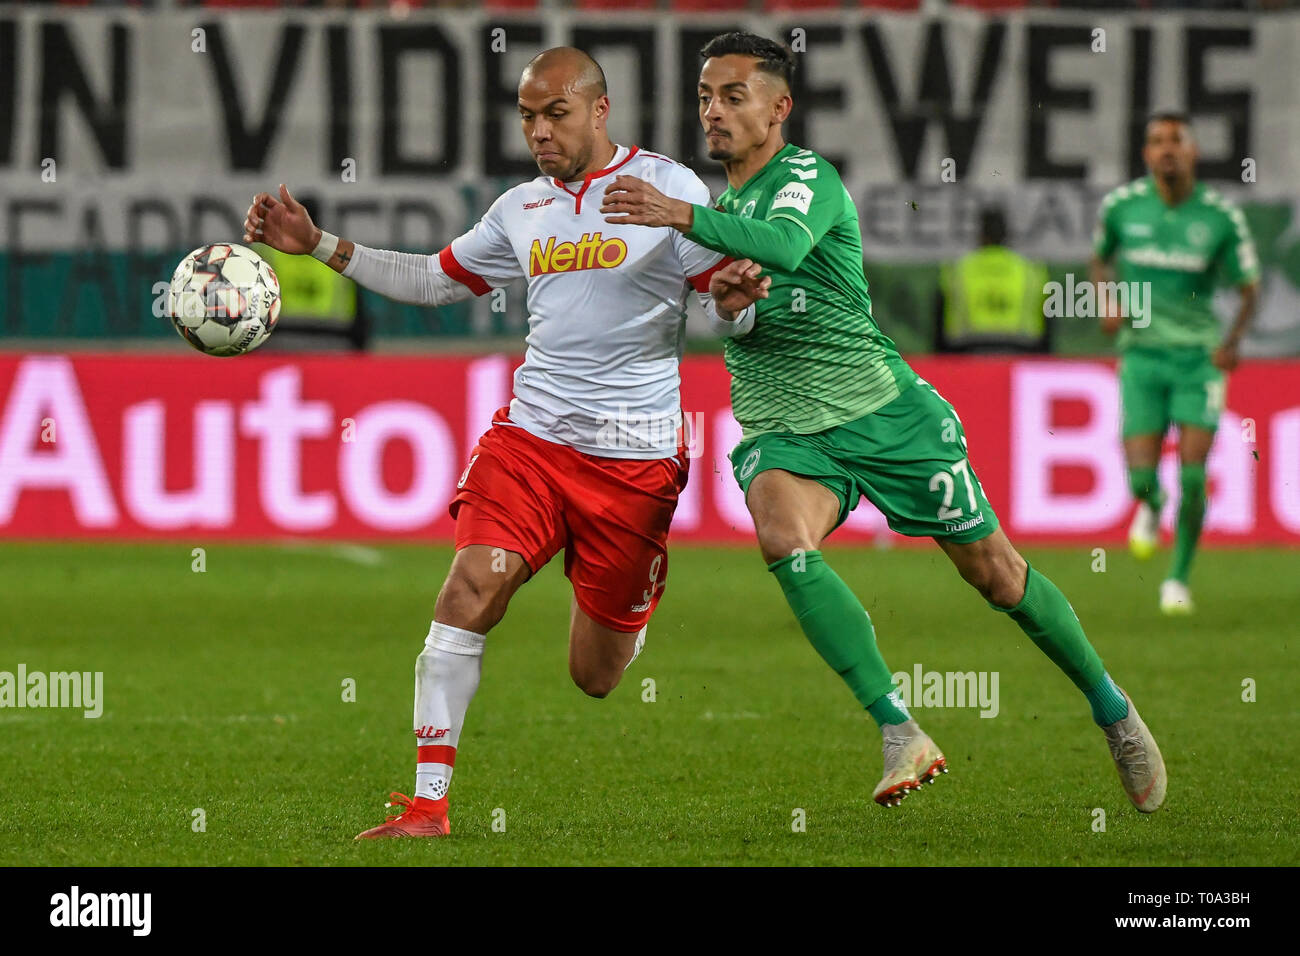 Regensburg, Germany. 18th Mar, 2019. Soccer: 2nd Bundesliga, Jahn Regensburg - SpVgg Greuther Fürth, 26th matchday in the Continental Arena. Jann George von Regensburg (l) and Kenny Prince Redondo von Fürth fight for the ball. Credit: Armin Weigel/dpa - IMPORTANT NOTE: In accordance with the requirements of the DFL Deutsche Fußball Liga or the DFB Deutscher Fußball-Bund, it is prohibited to use or have used photographs taken in the stadium and/or the match in the form of sequence images and/or video-like photo sequences./dpa/Alamy Live News - Stock Image